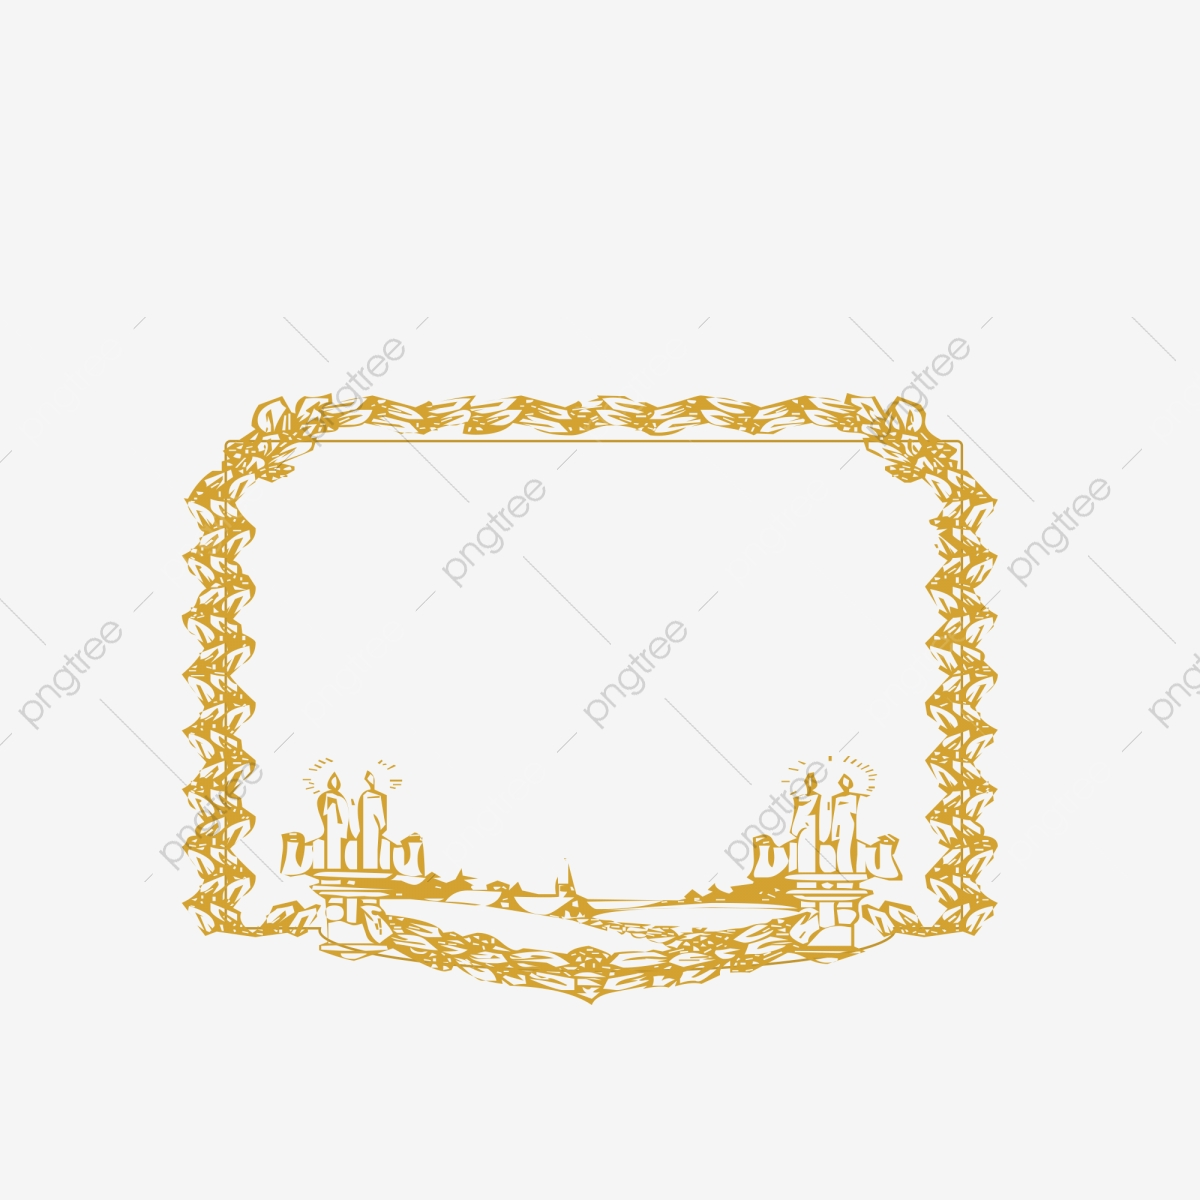 European Classical Border Text Gold Can Be Used Commercially, Gold.